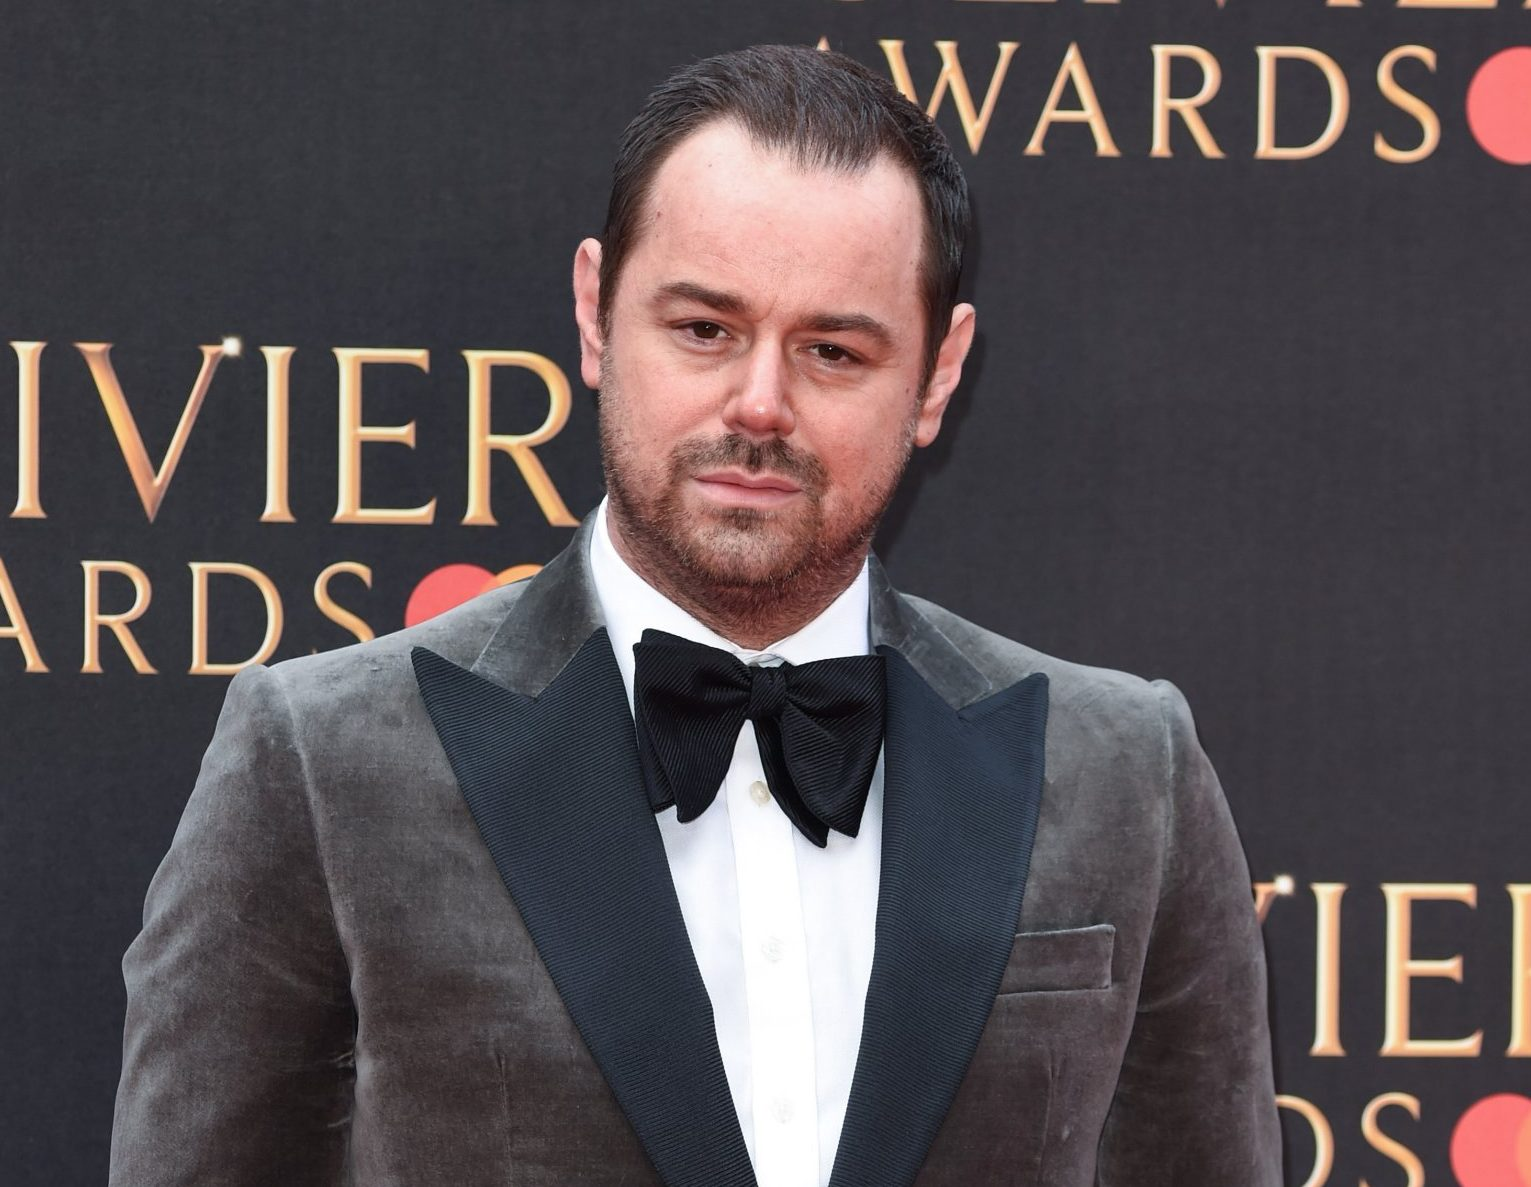 Danny Dyer made a cheeky joke about the Duchess of Cornwall